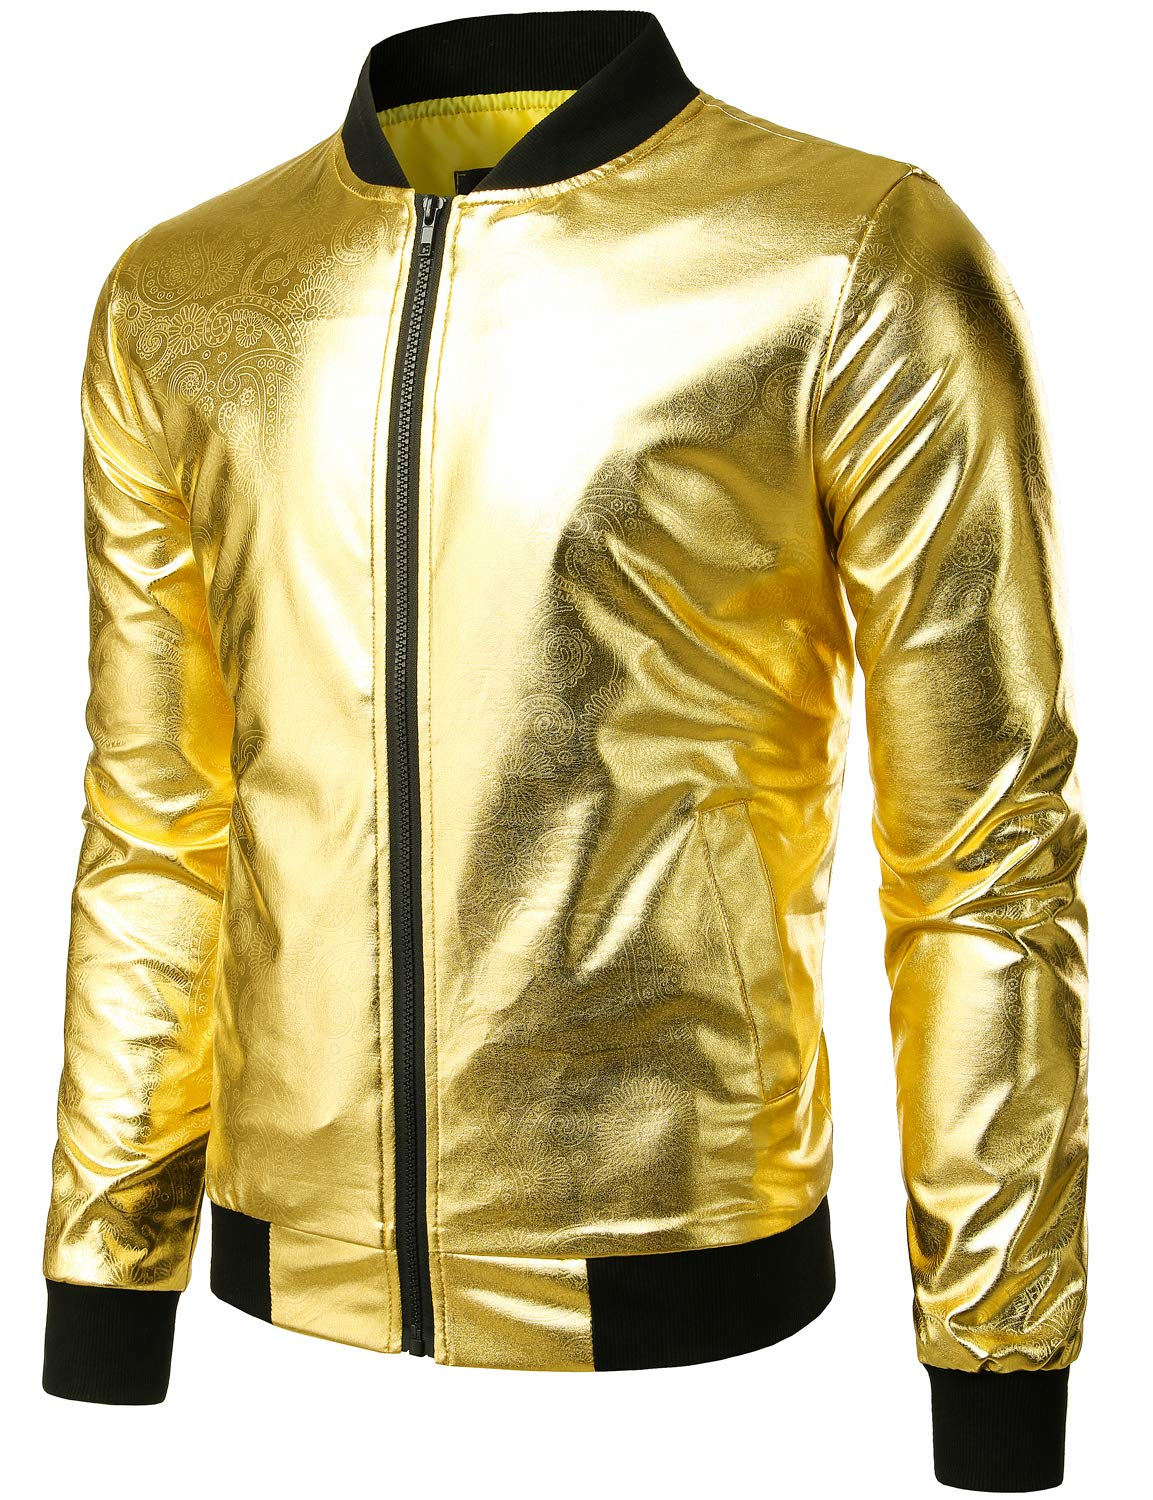 ZEROYAA Mens Hipster Geek Metallic Shinny Solid Paisley Floral Slim Fit Zip Up Baseball Varsity Bomber Jacket Z47 Gold XX Large by ZEROYAA